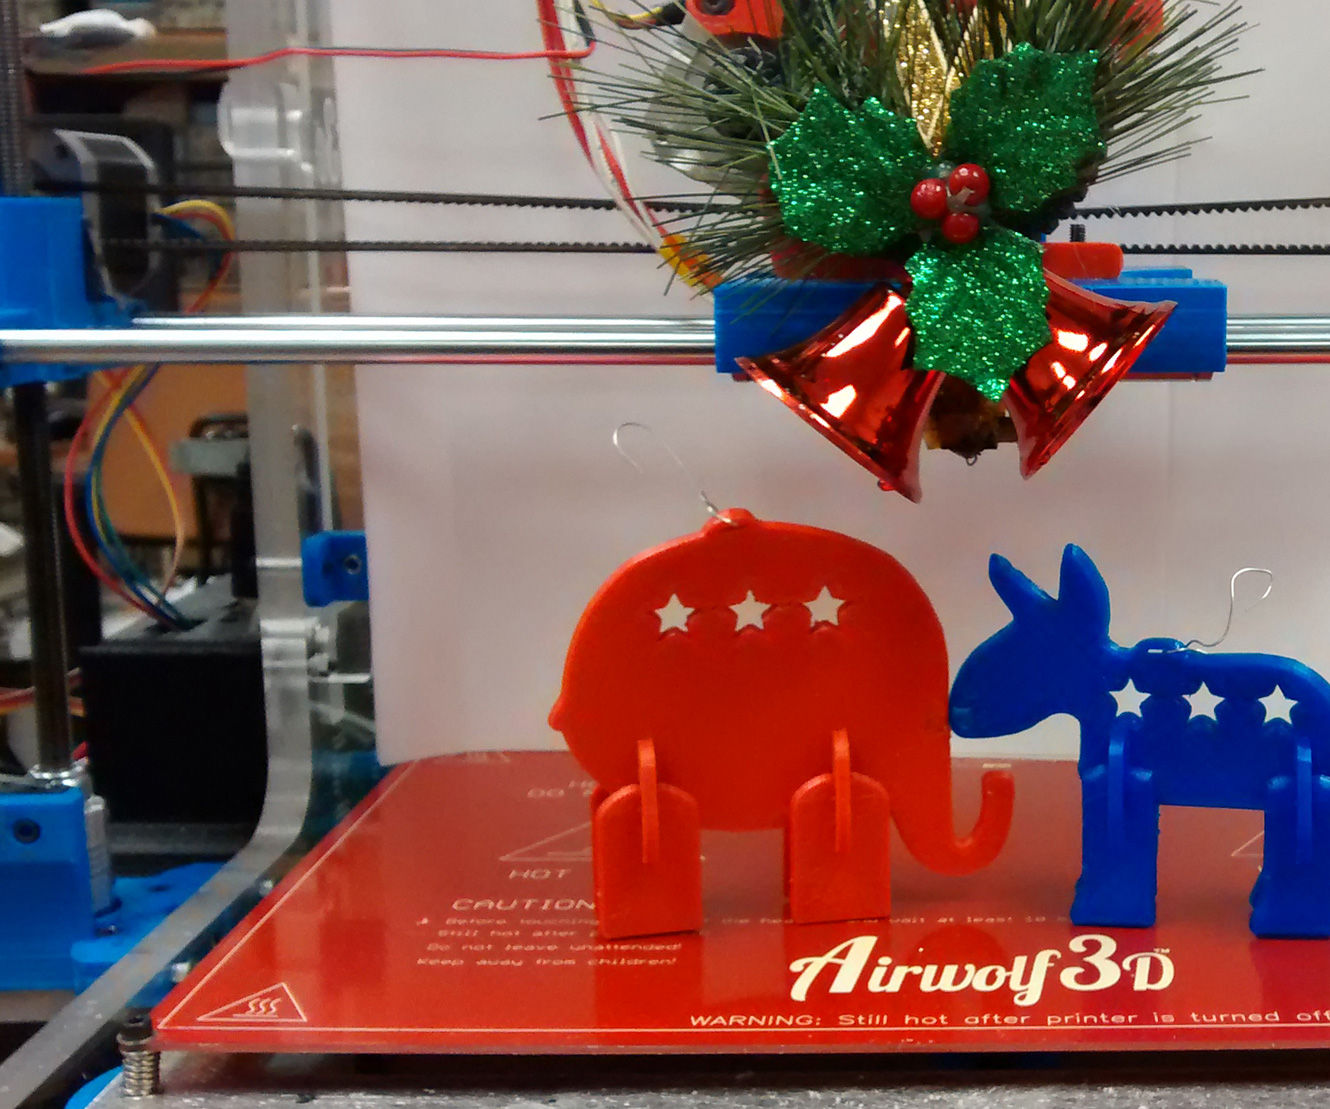 3D Printed Kissing Political Figurines